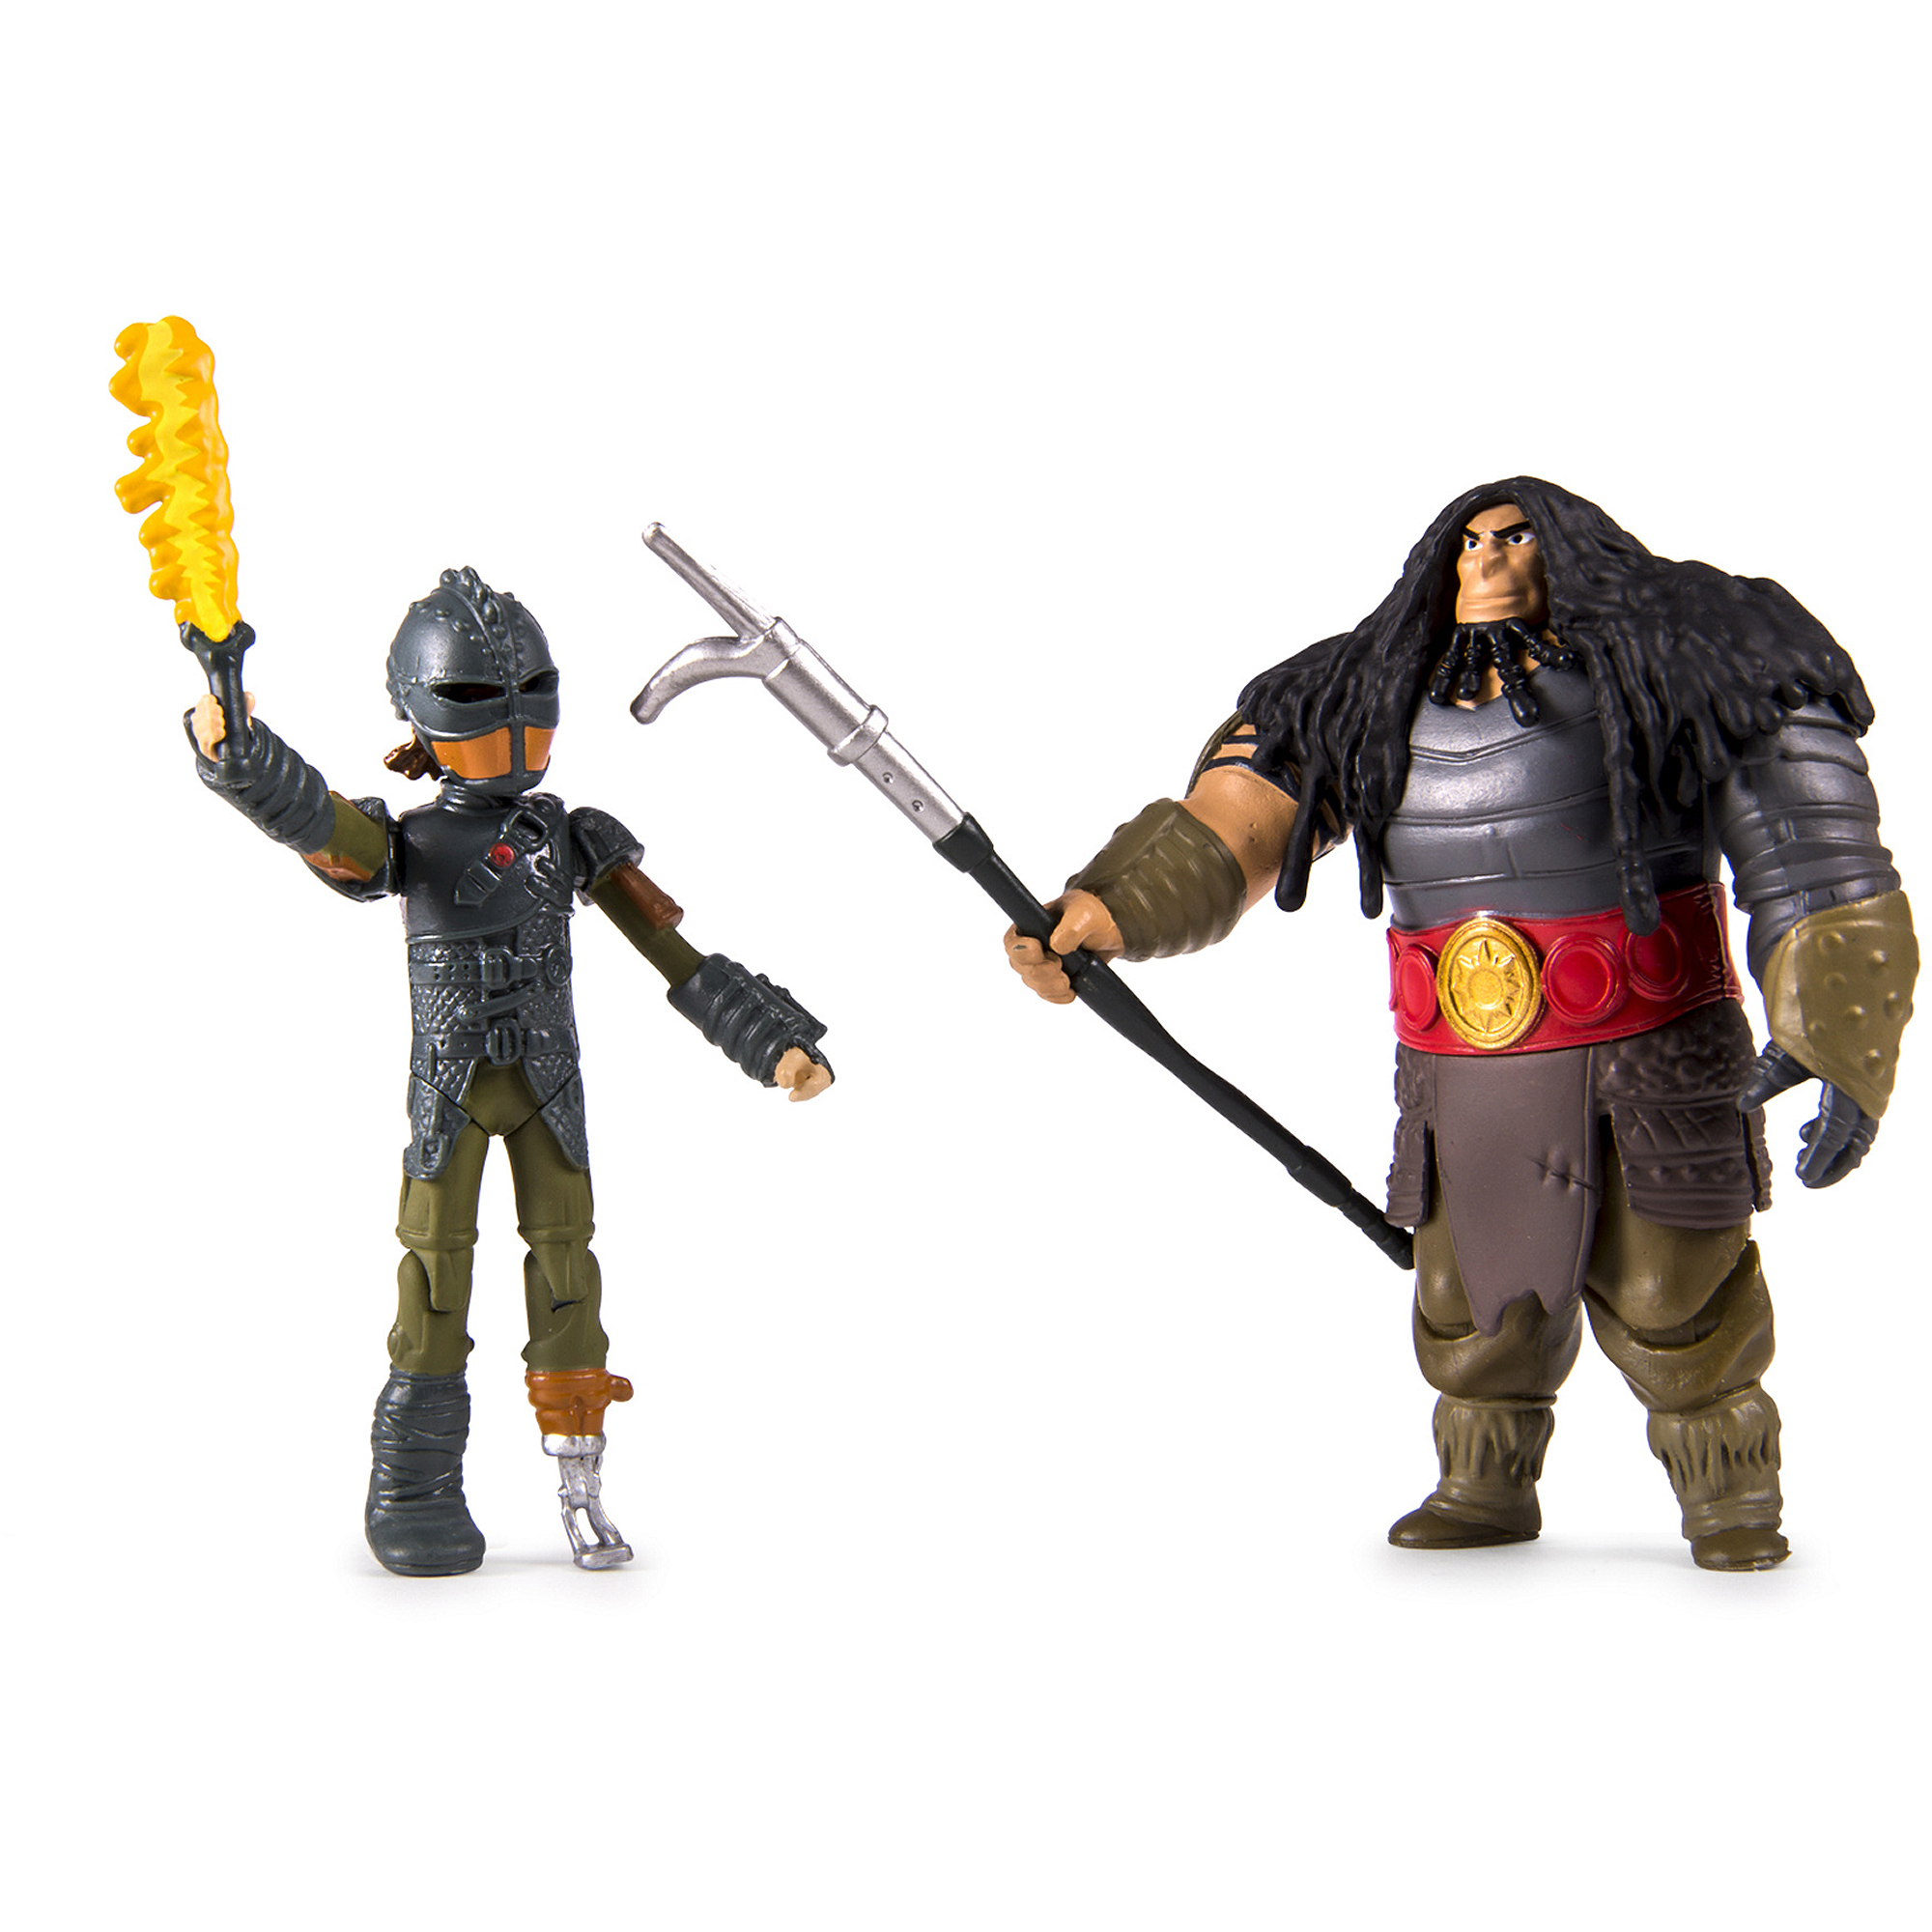 Dreamworks dragons how to train your dragon 2 viking warrior 2 pack dreamworks dragons how to train your dragon 2 viking warrior 2 pack hiccup vs drago walmart ccuart Gallery